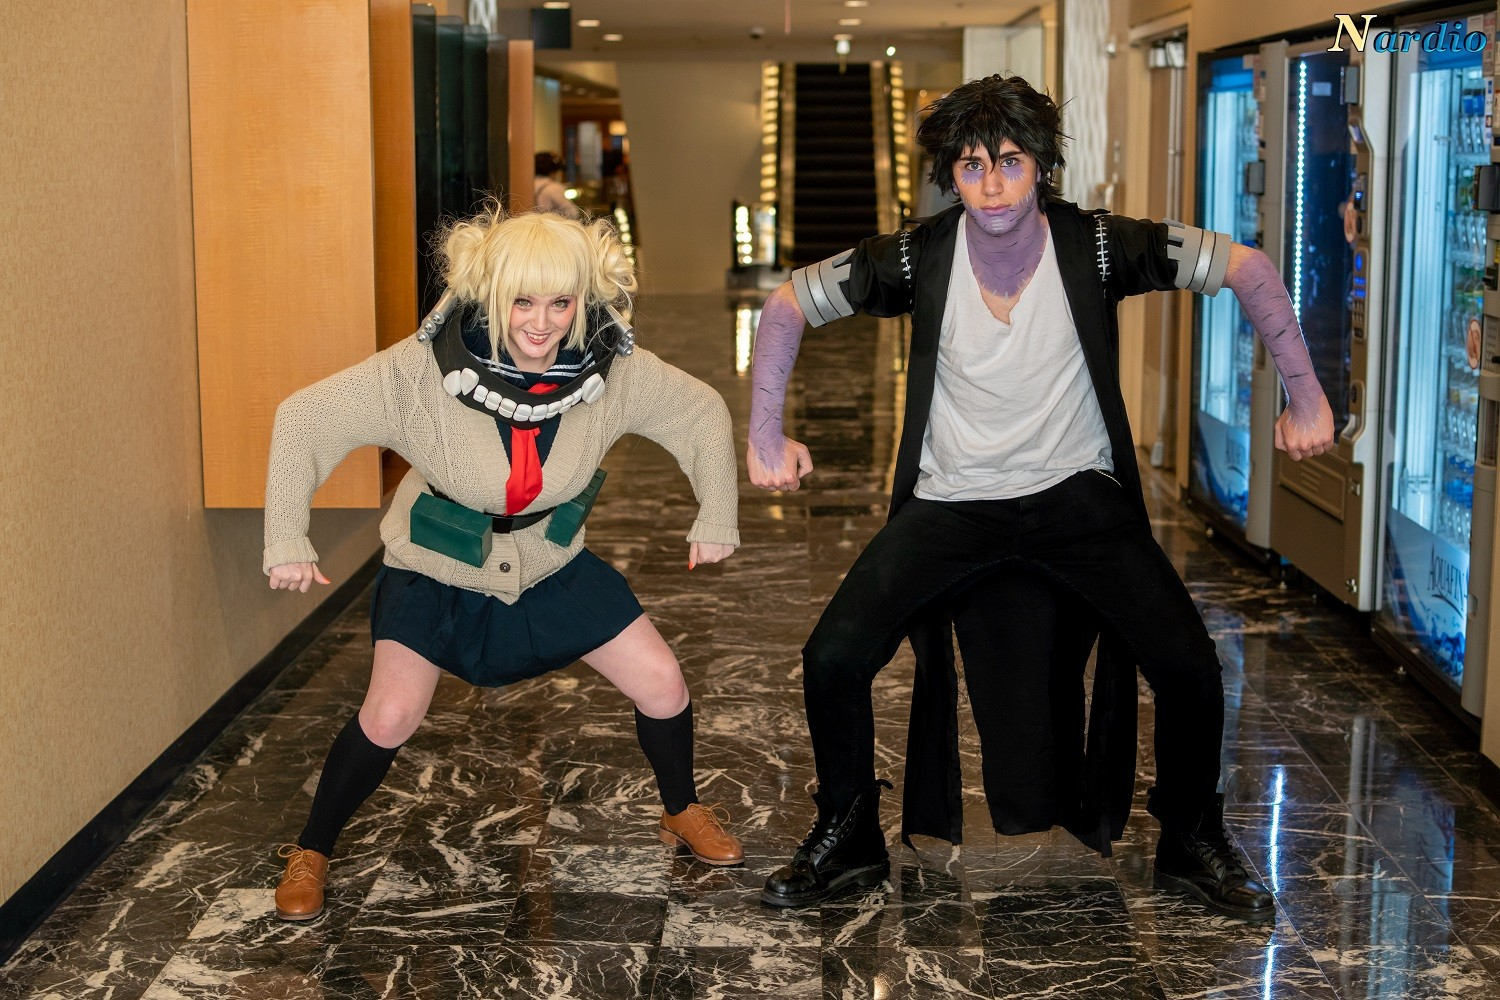 oga and Dabi at Liberty City Anime Convention